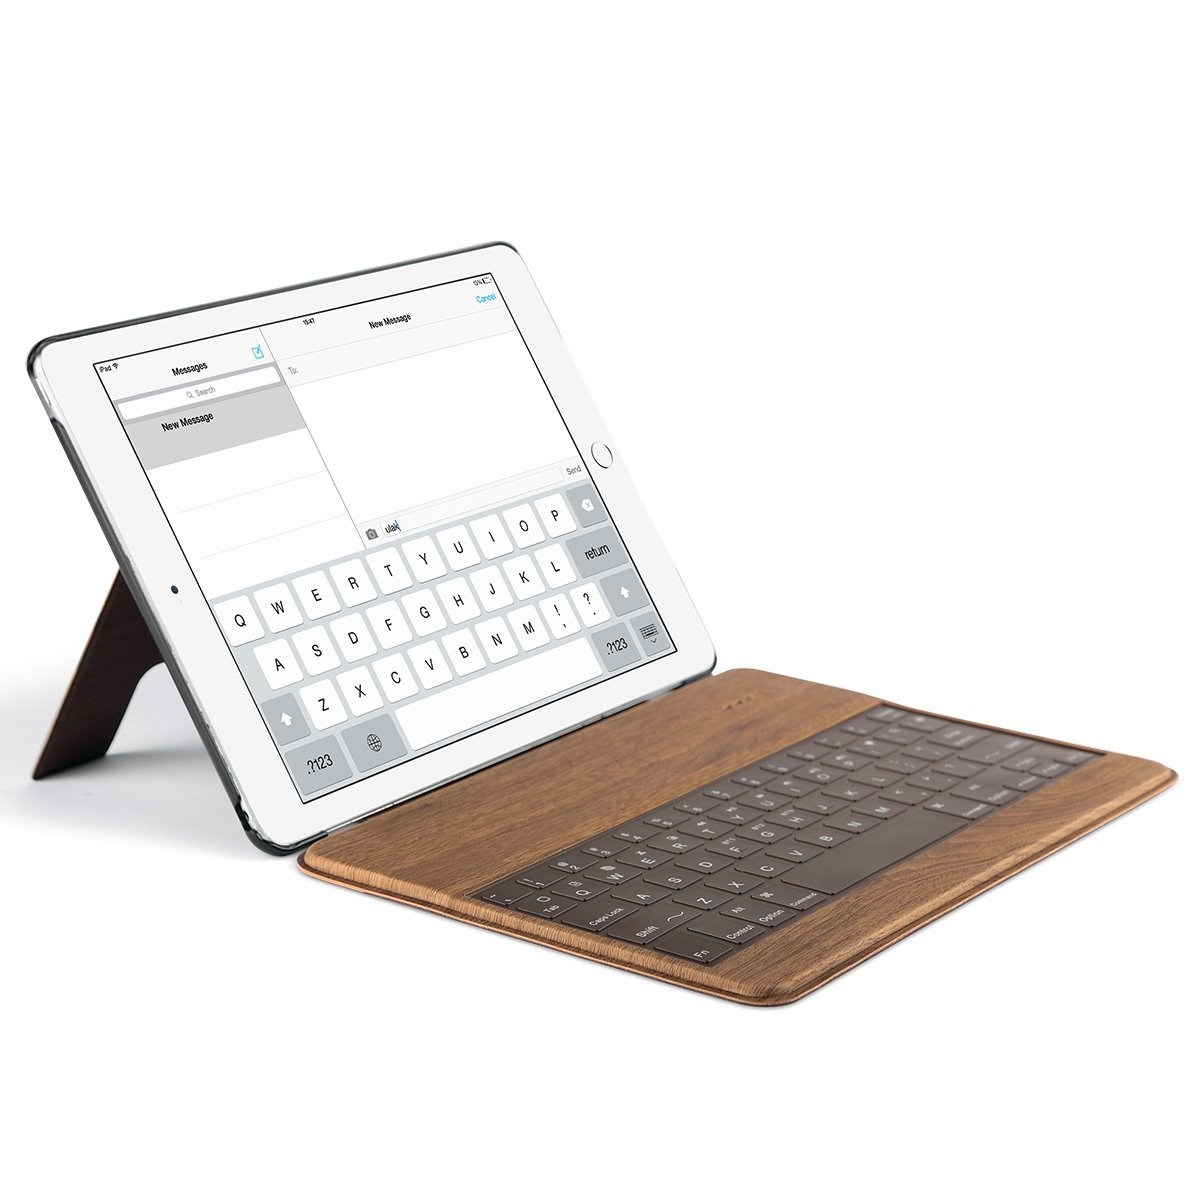 iPad Air 2 Bluetooth Keyboard Case, ULAK  Ultra-Slim Wood Pattern Stand Smart Cover with Built-in Wireless Bluetooth Keyboard Cases for Apple iPad Air 2 9.7 inch (2014)  Auto Sleep / Wake Feature